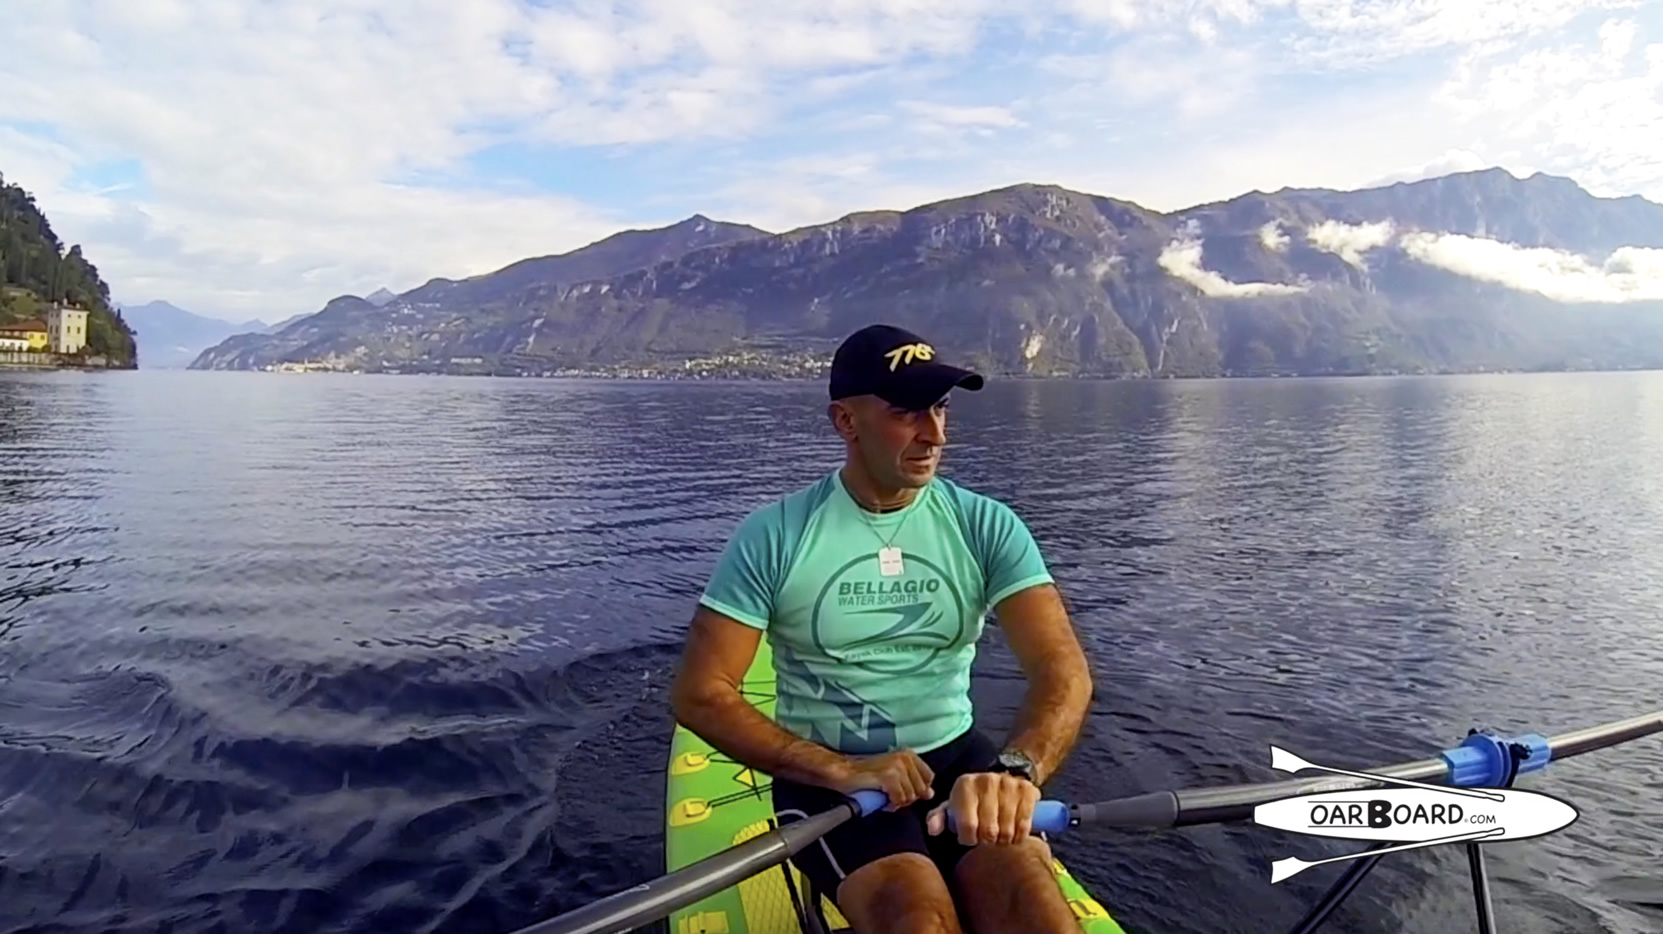 Michael-Gondola-Oar-Board-Stand-Up-Paddle-Board-Whitehall-Rowing-and-Sail-Adventure-Vacation-Lifestyle-Italy